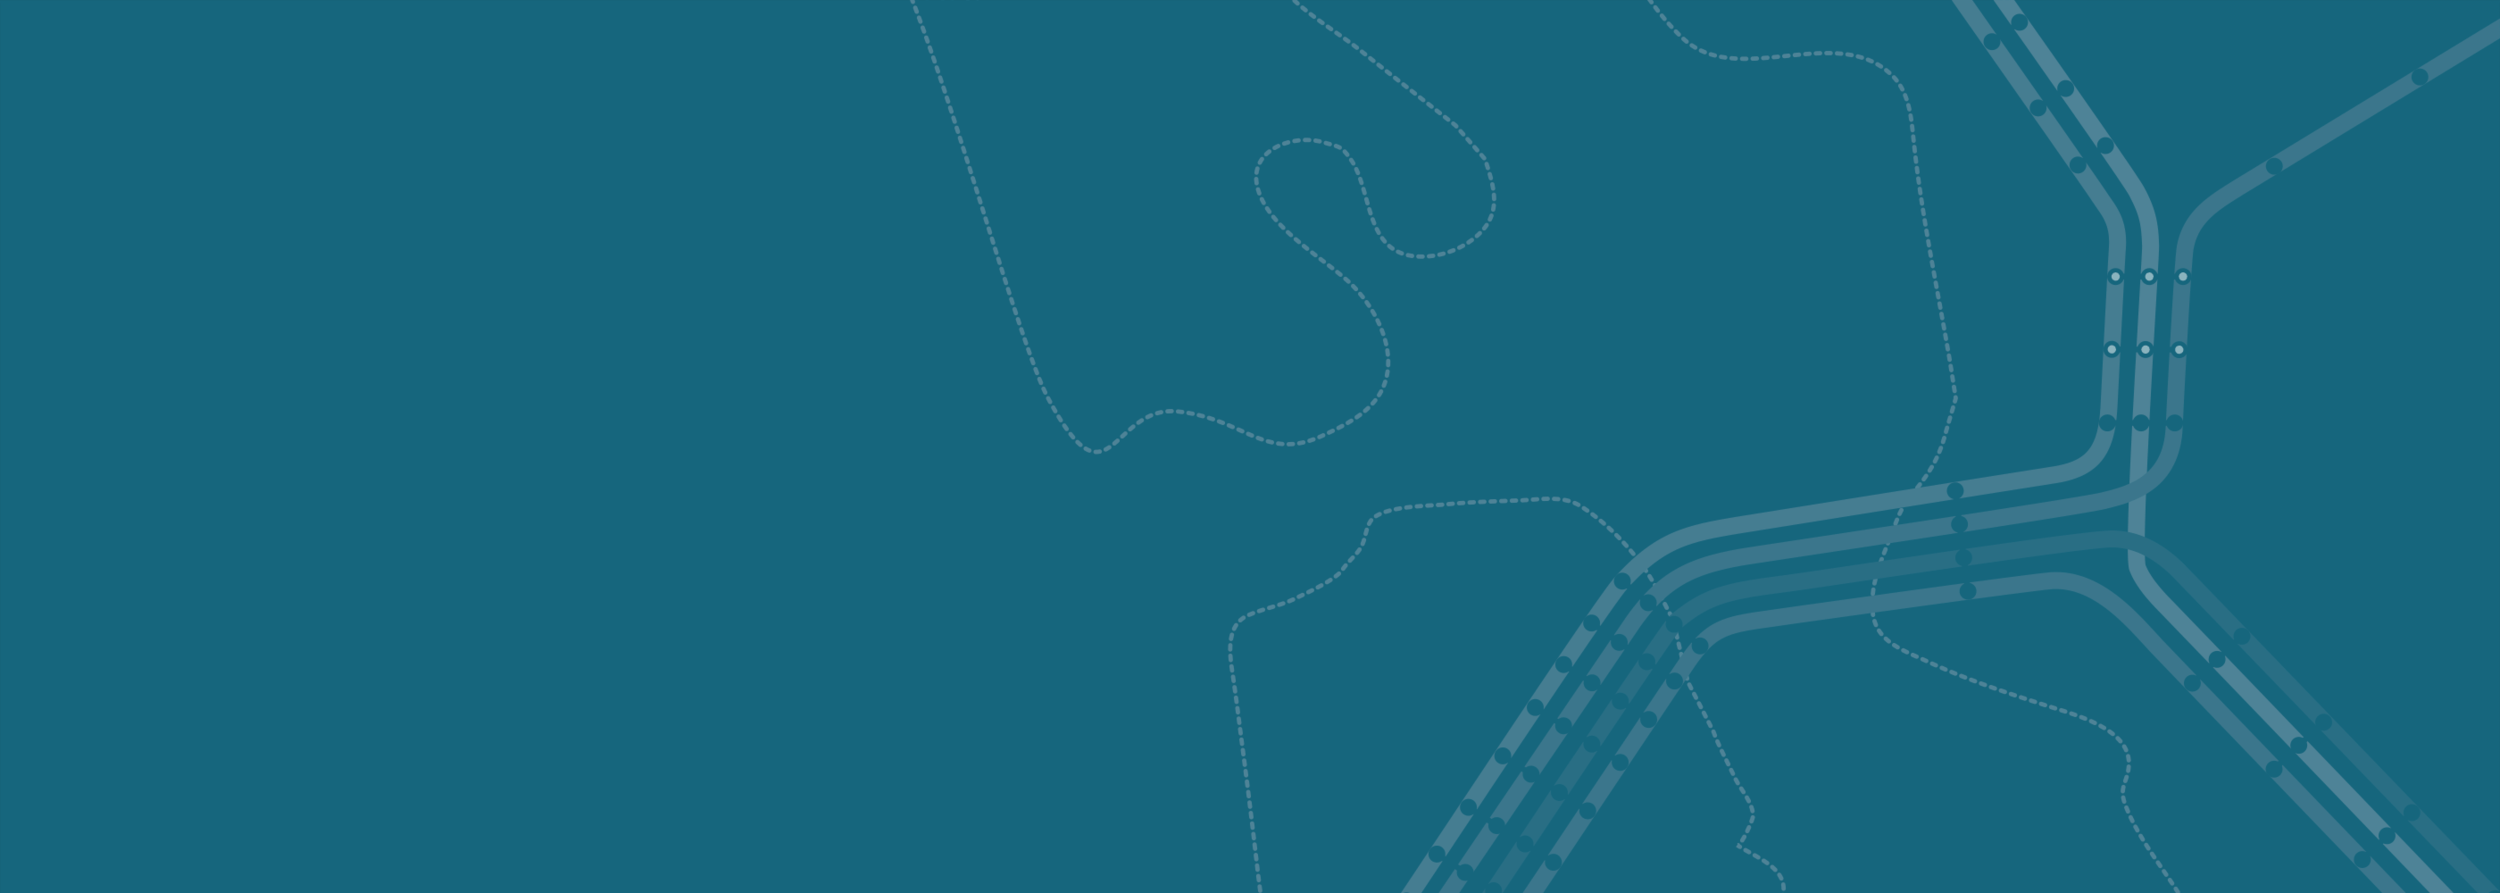 Let's get somewhere together. - Transit Creative helps you find the right direction—then we design a clear map to help you move forward confidently.